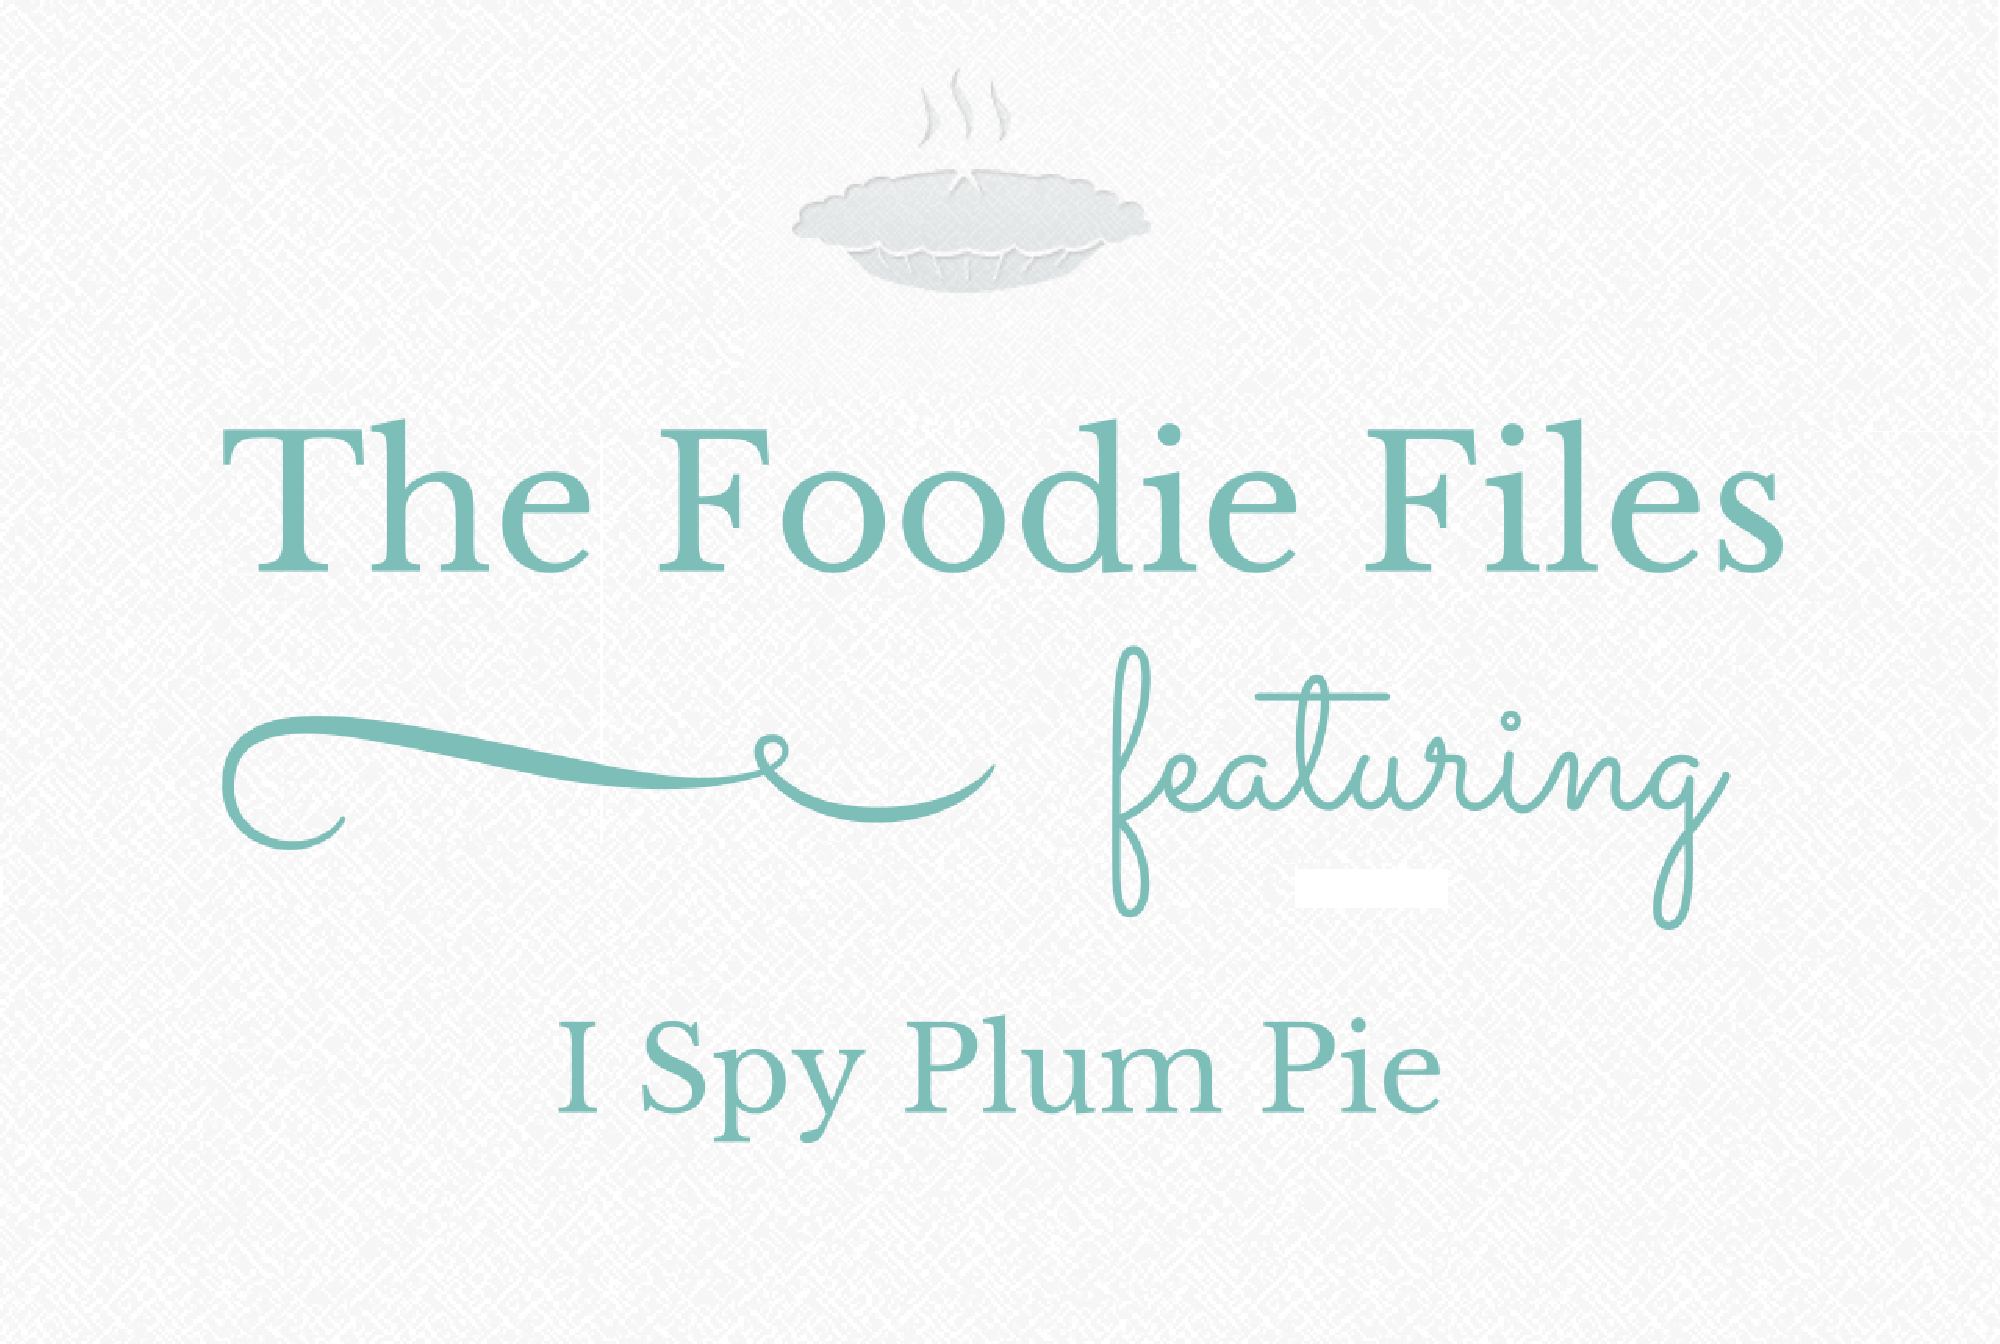 The Foodie Files - I Spy Plum Pie